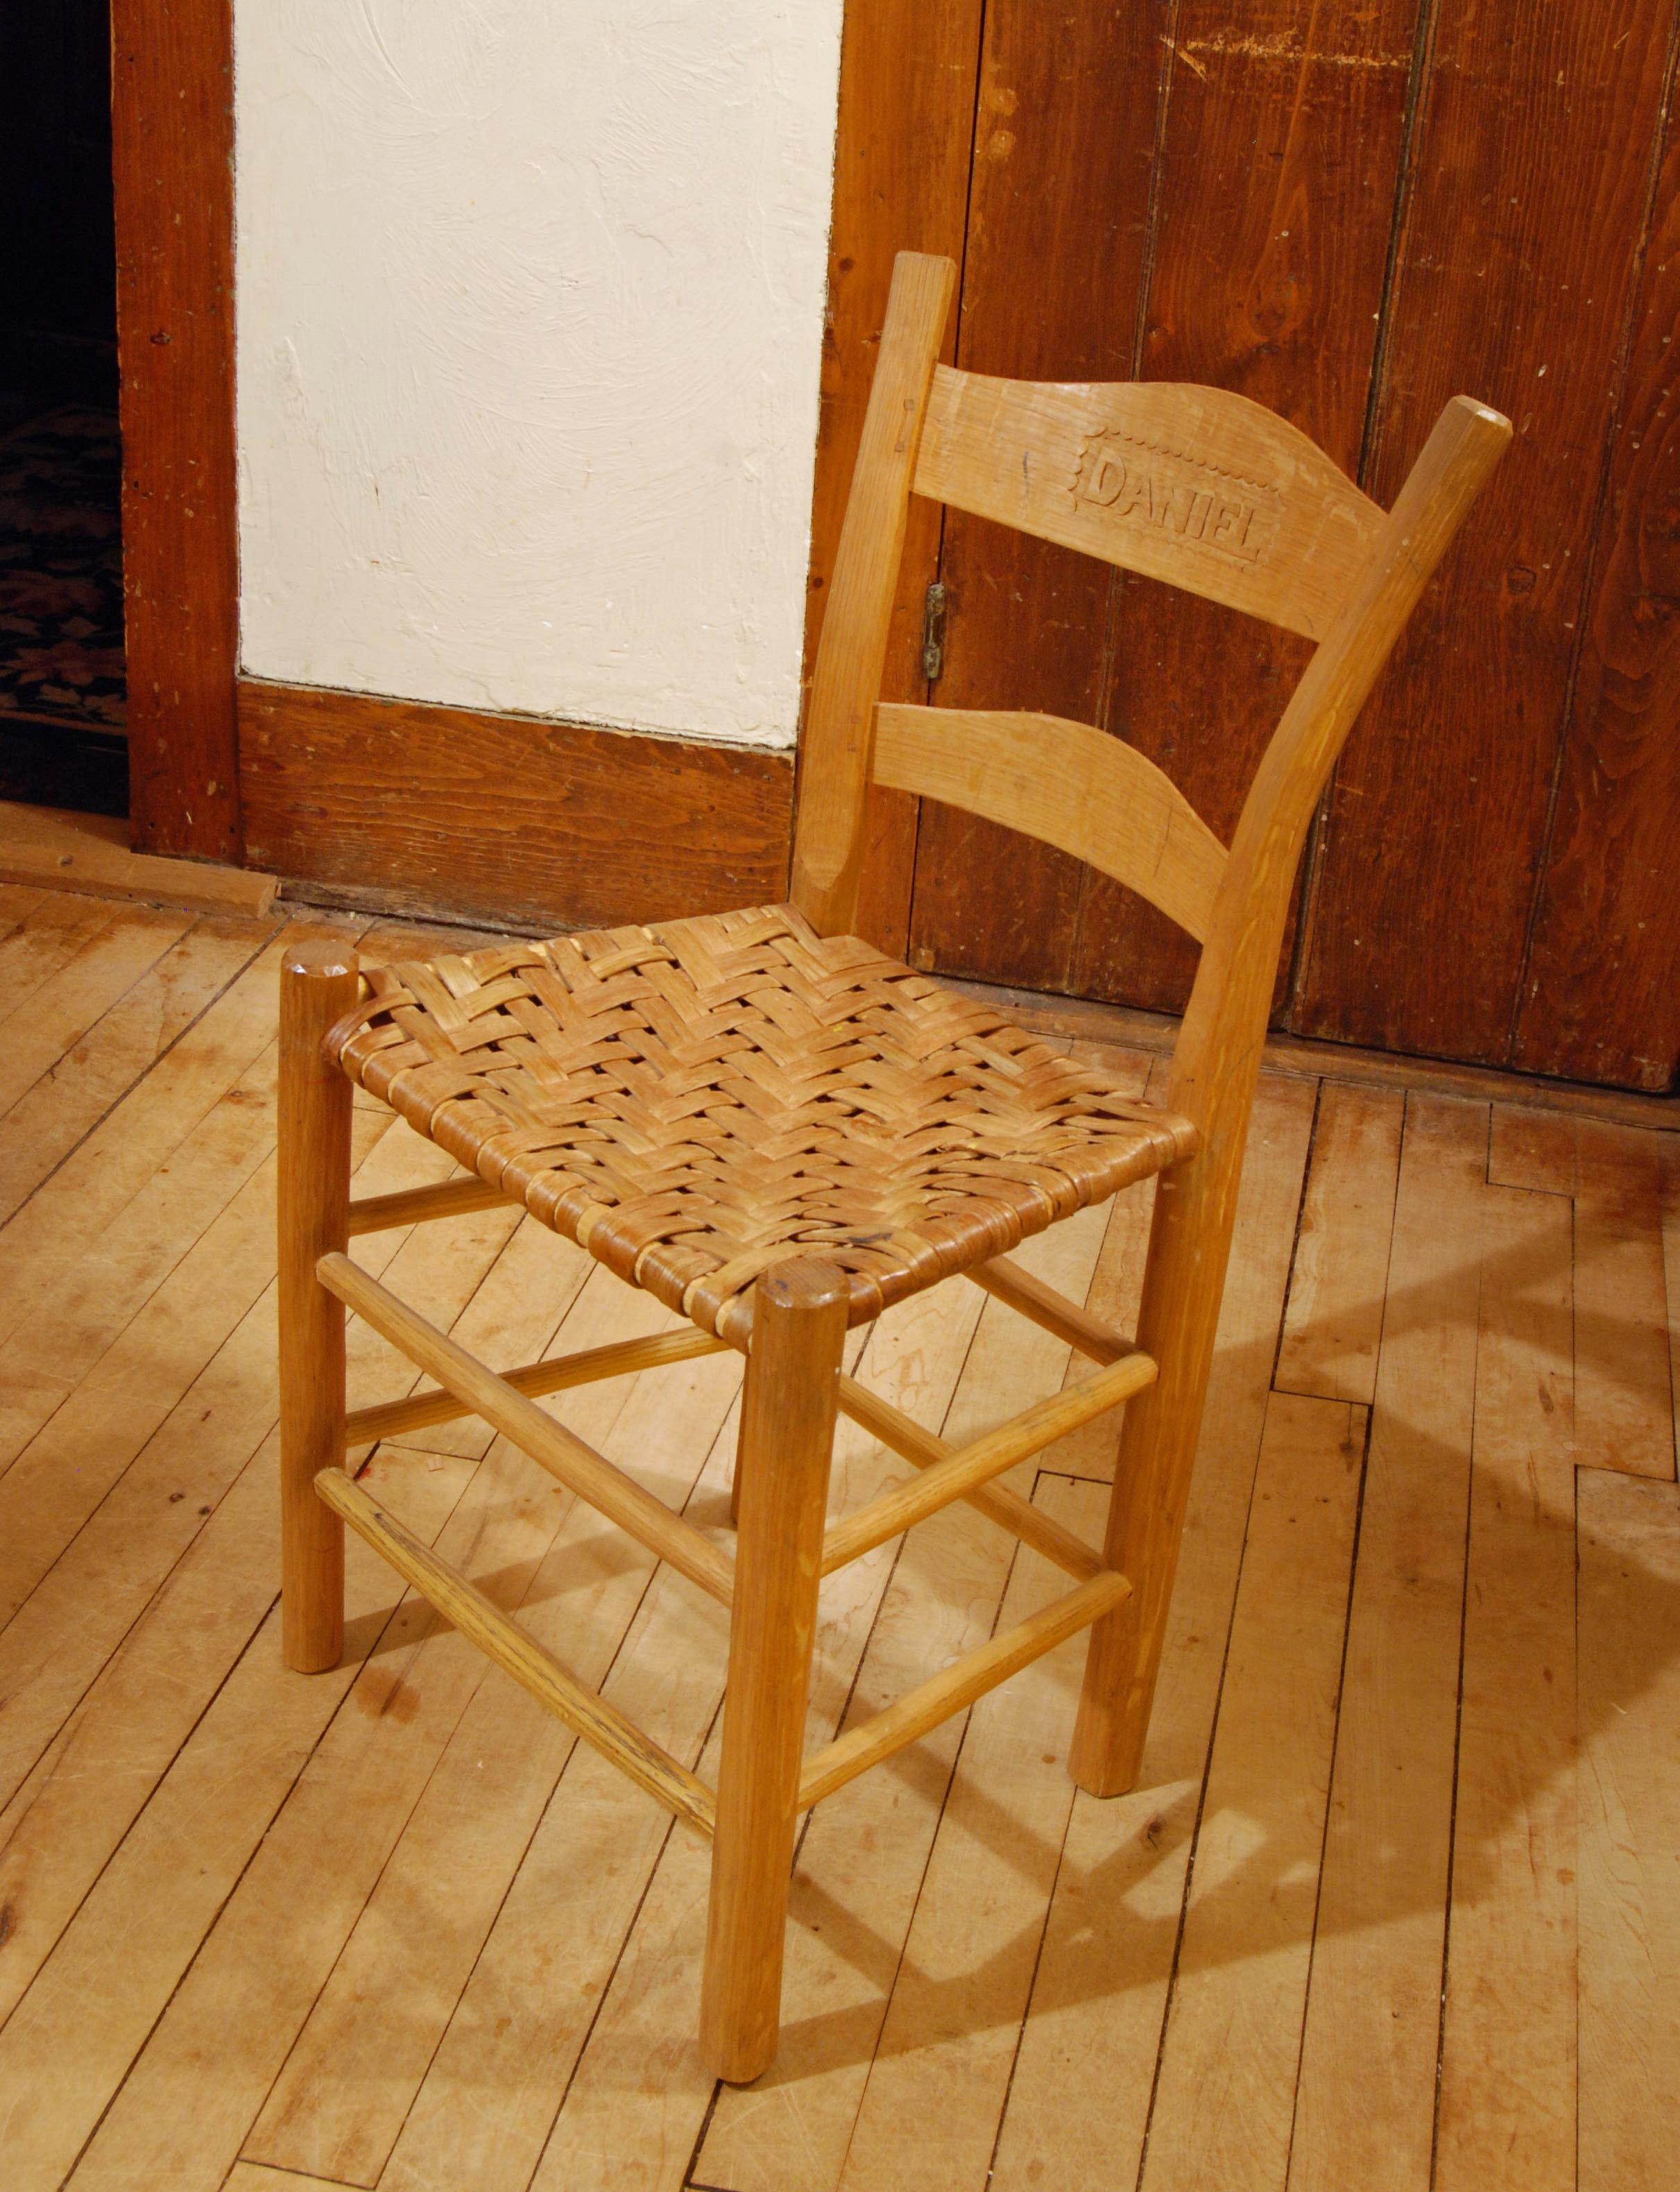 Made Ladderbacks, Rockers, Windsors U2013 Then Got Into The 17th Century U0026 Made  Wainscot Chairs, 3 Legged U0026 4 Legged. Turned Chairs Ditto. Leather Chairs.